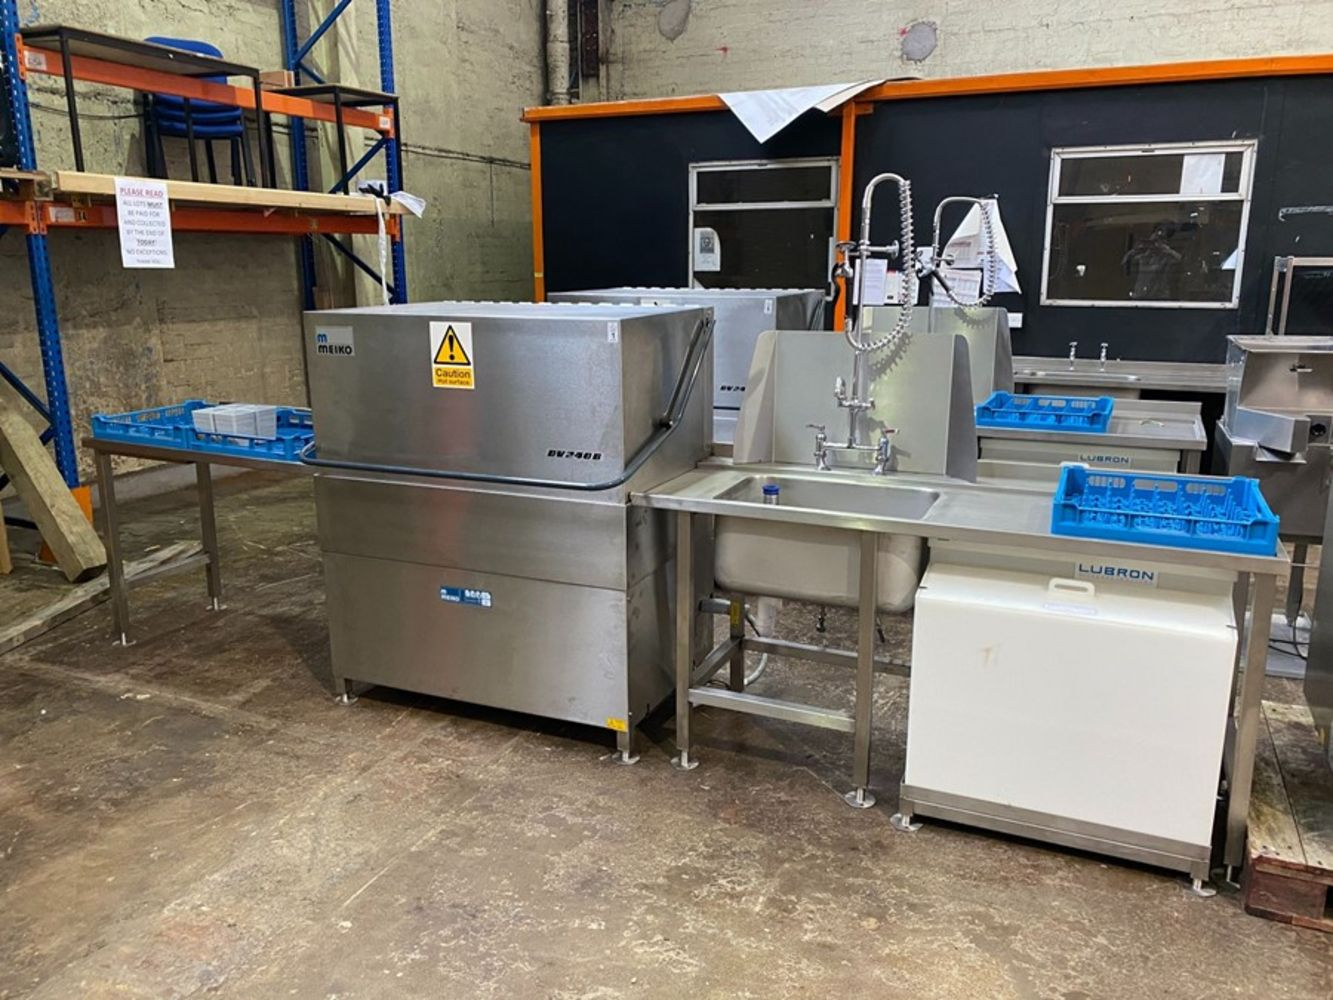 **POSTPONED DUE TO UPDATED COVID RESTRICTIONS** 250 LOT CATERING ONLINE AUCTION - ENDING 12TH DECEMBER FROM 12NOON - COLLECTION ONLY